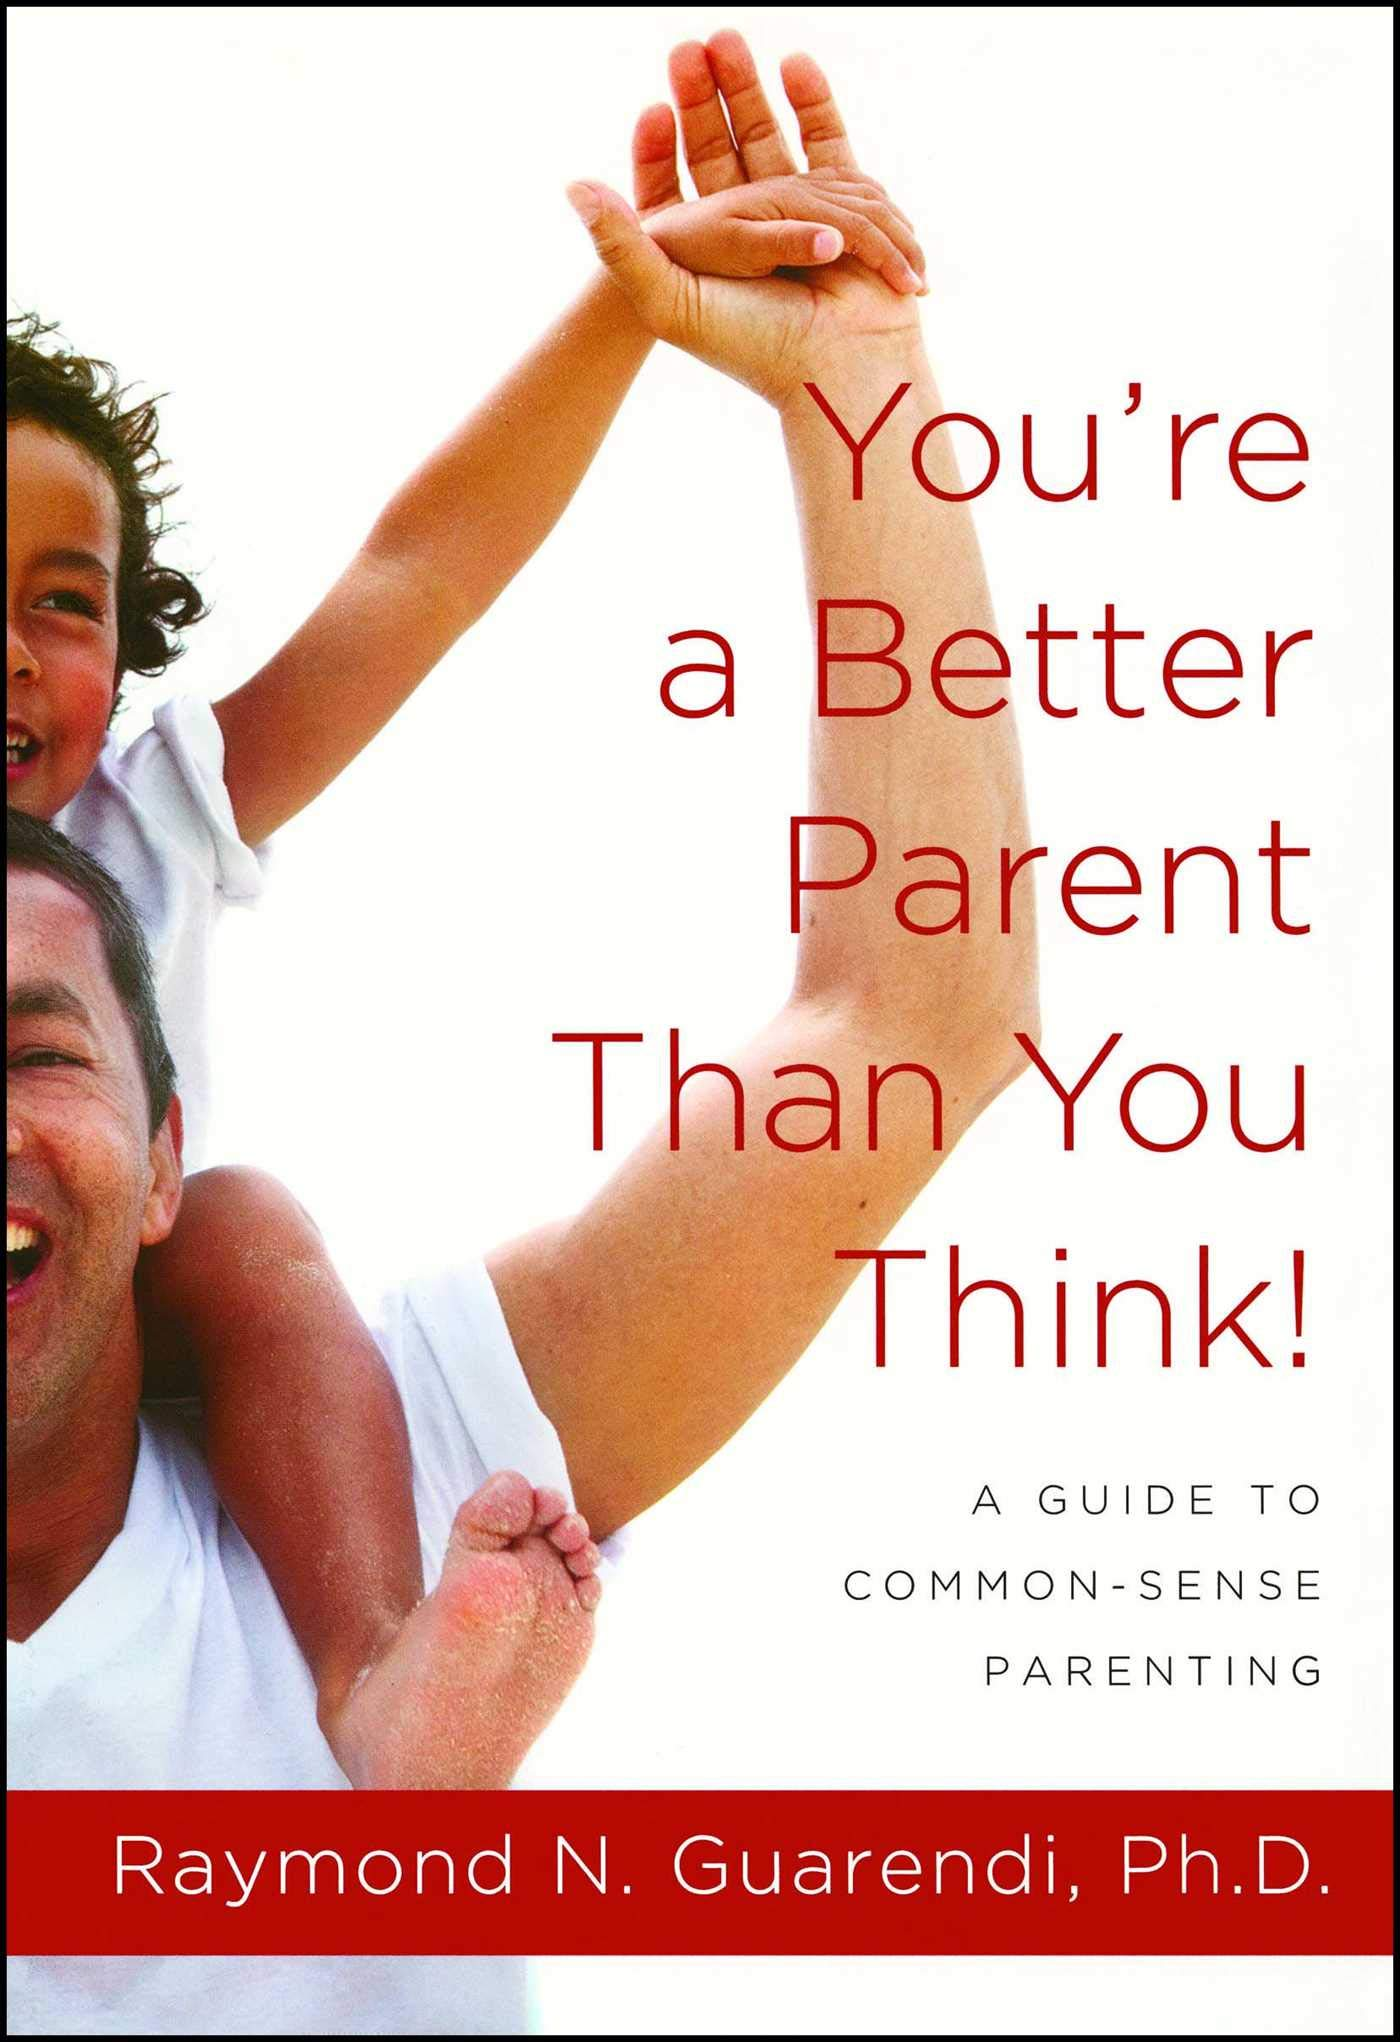 You're a Better Parent Than You Think!: A Guide to Common-Sense Parenting